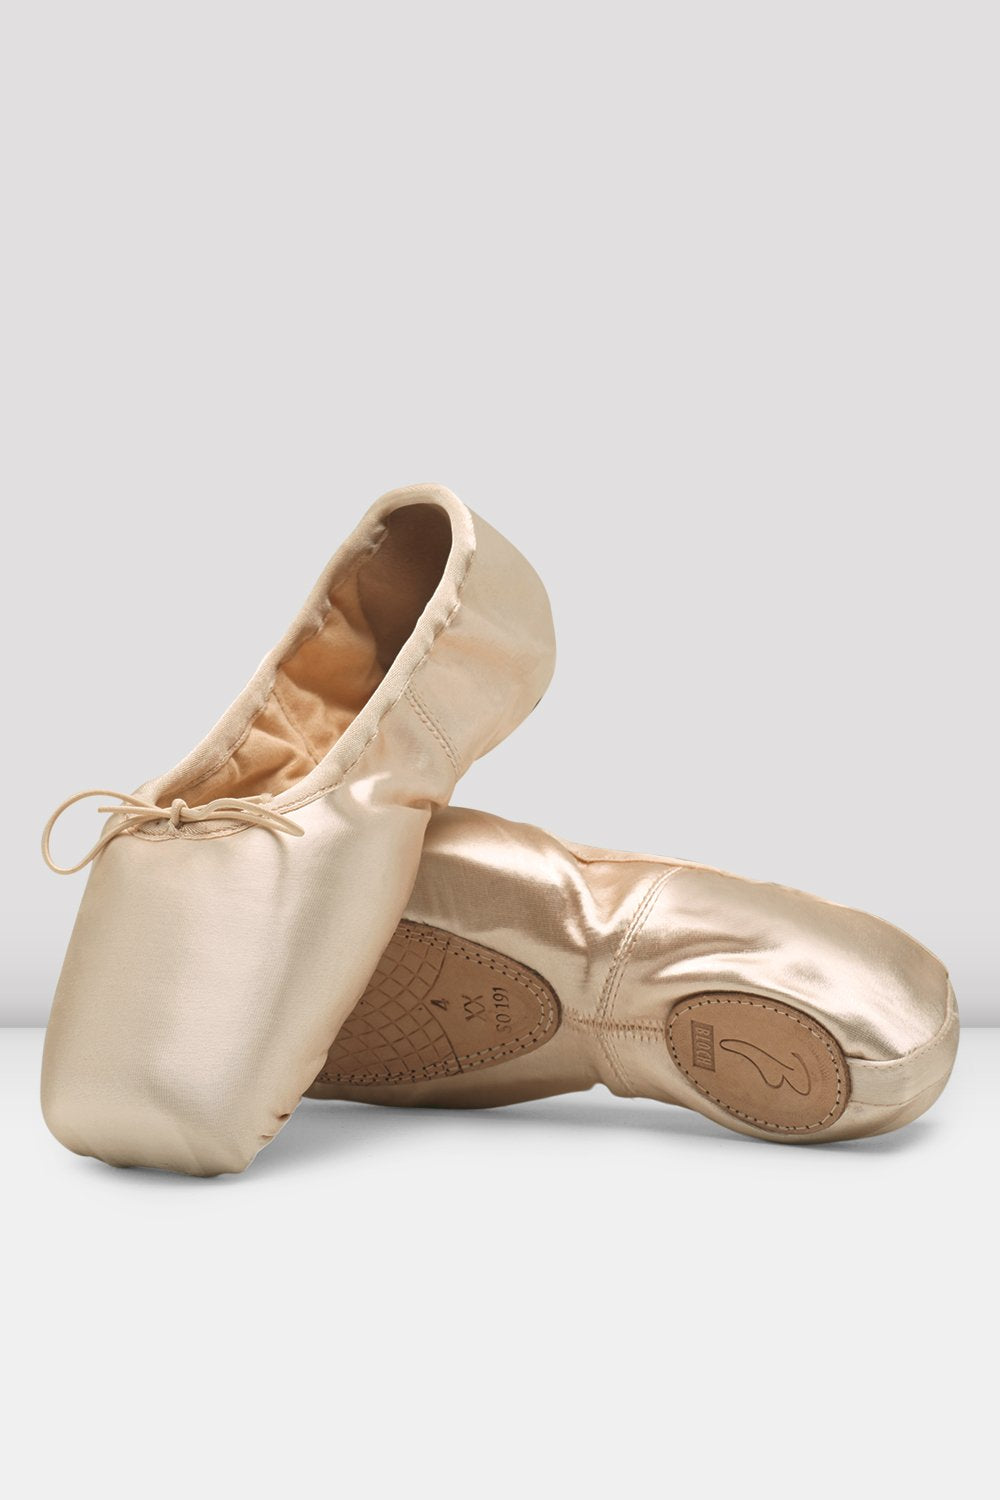 Elegance Stretch Pointe Shoes - BLOCH US